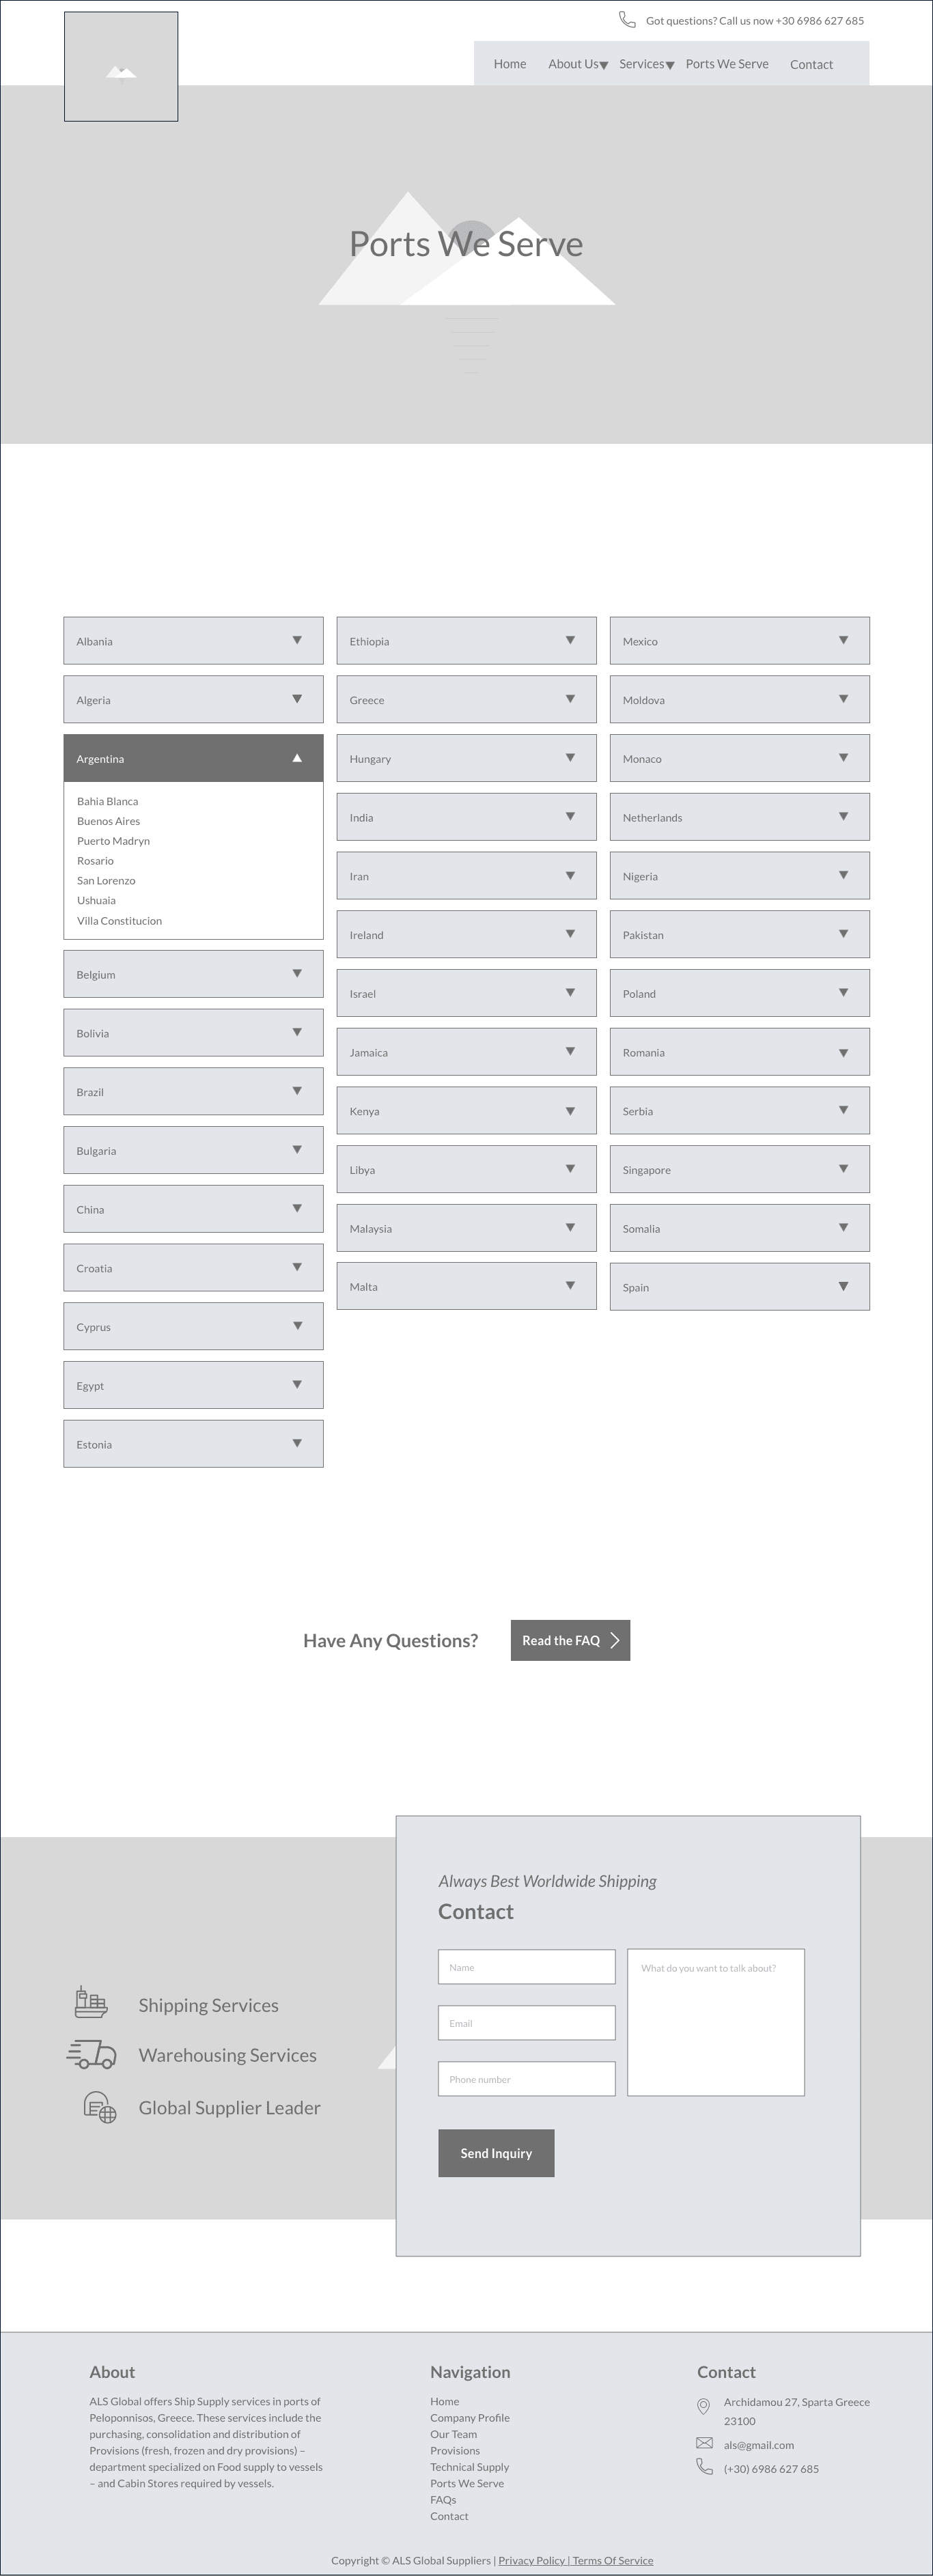 The Mockup Page Of Ports